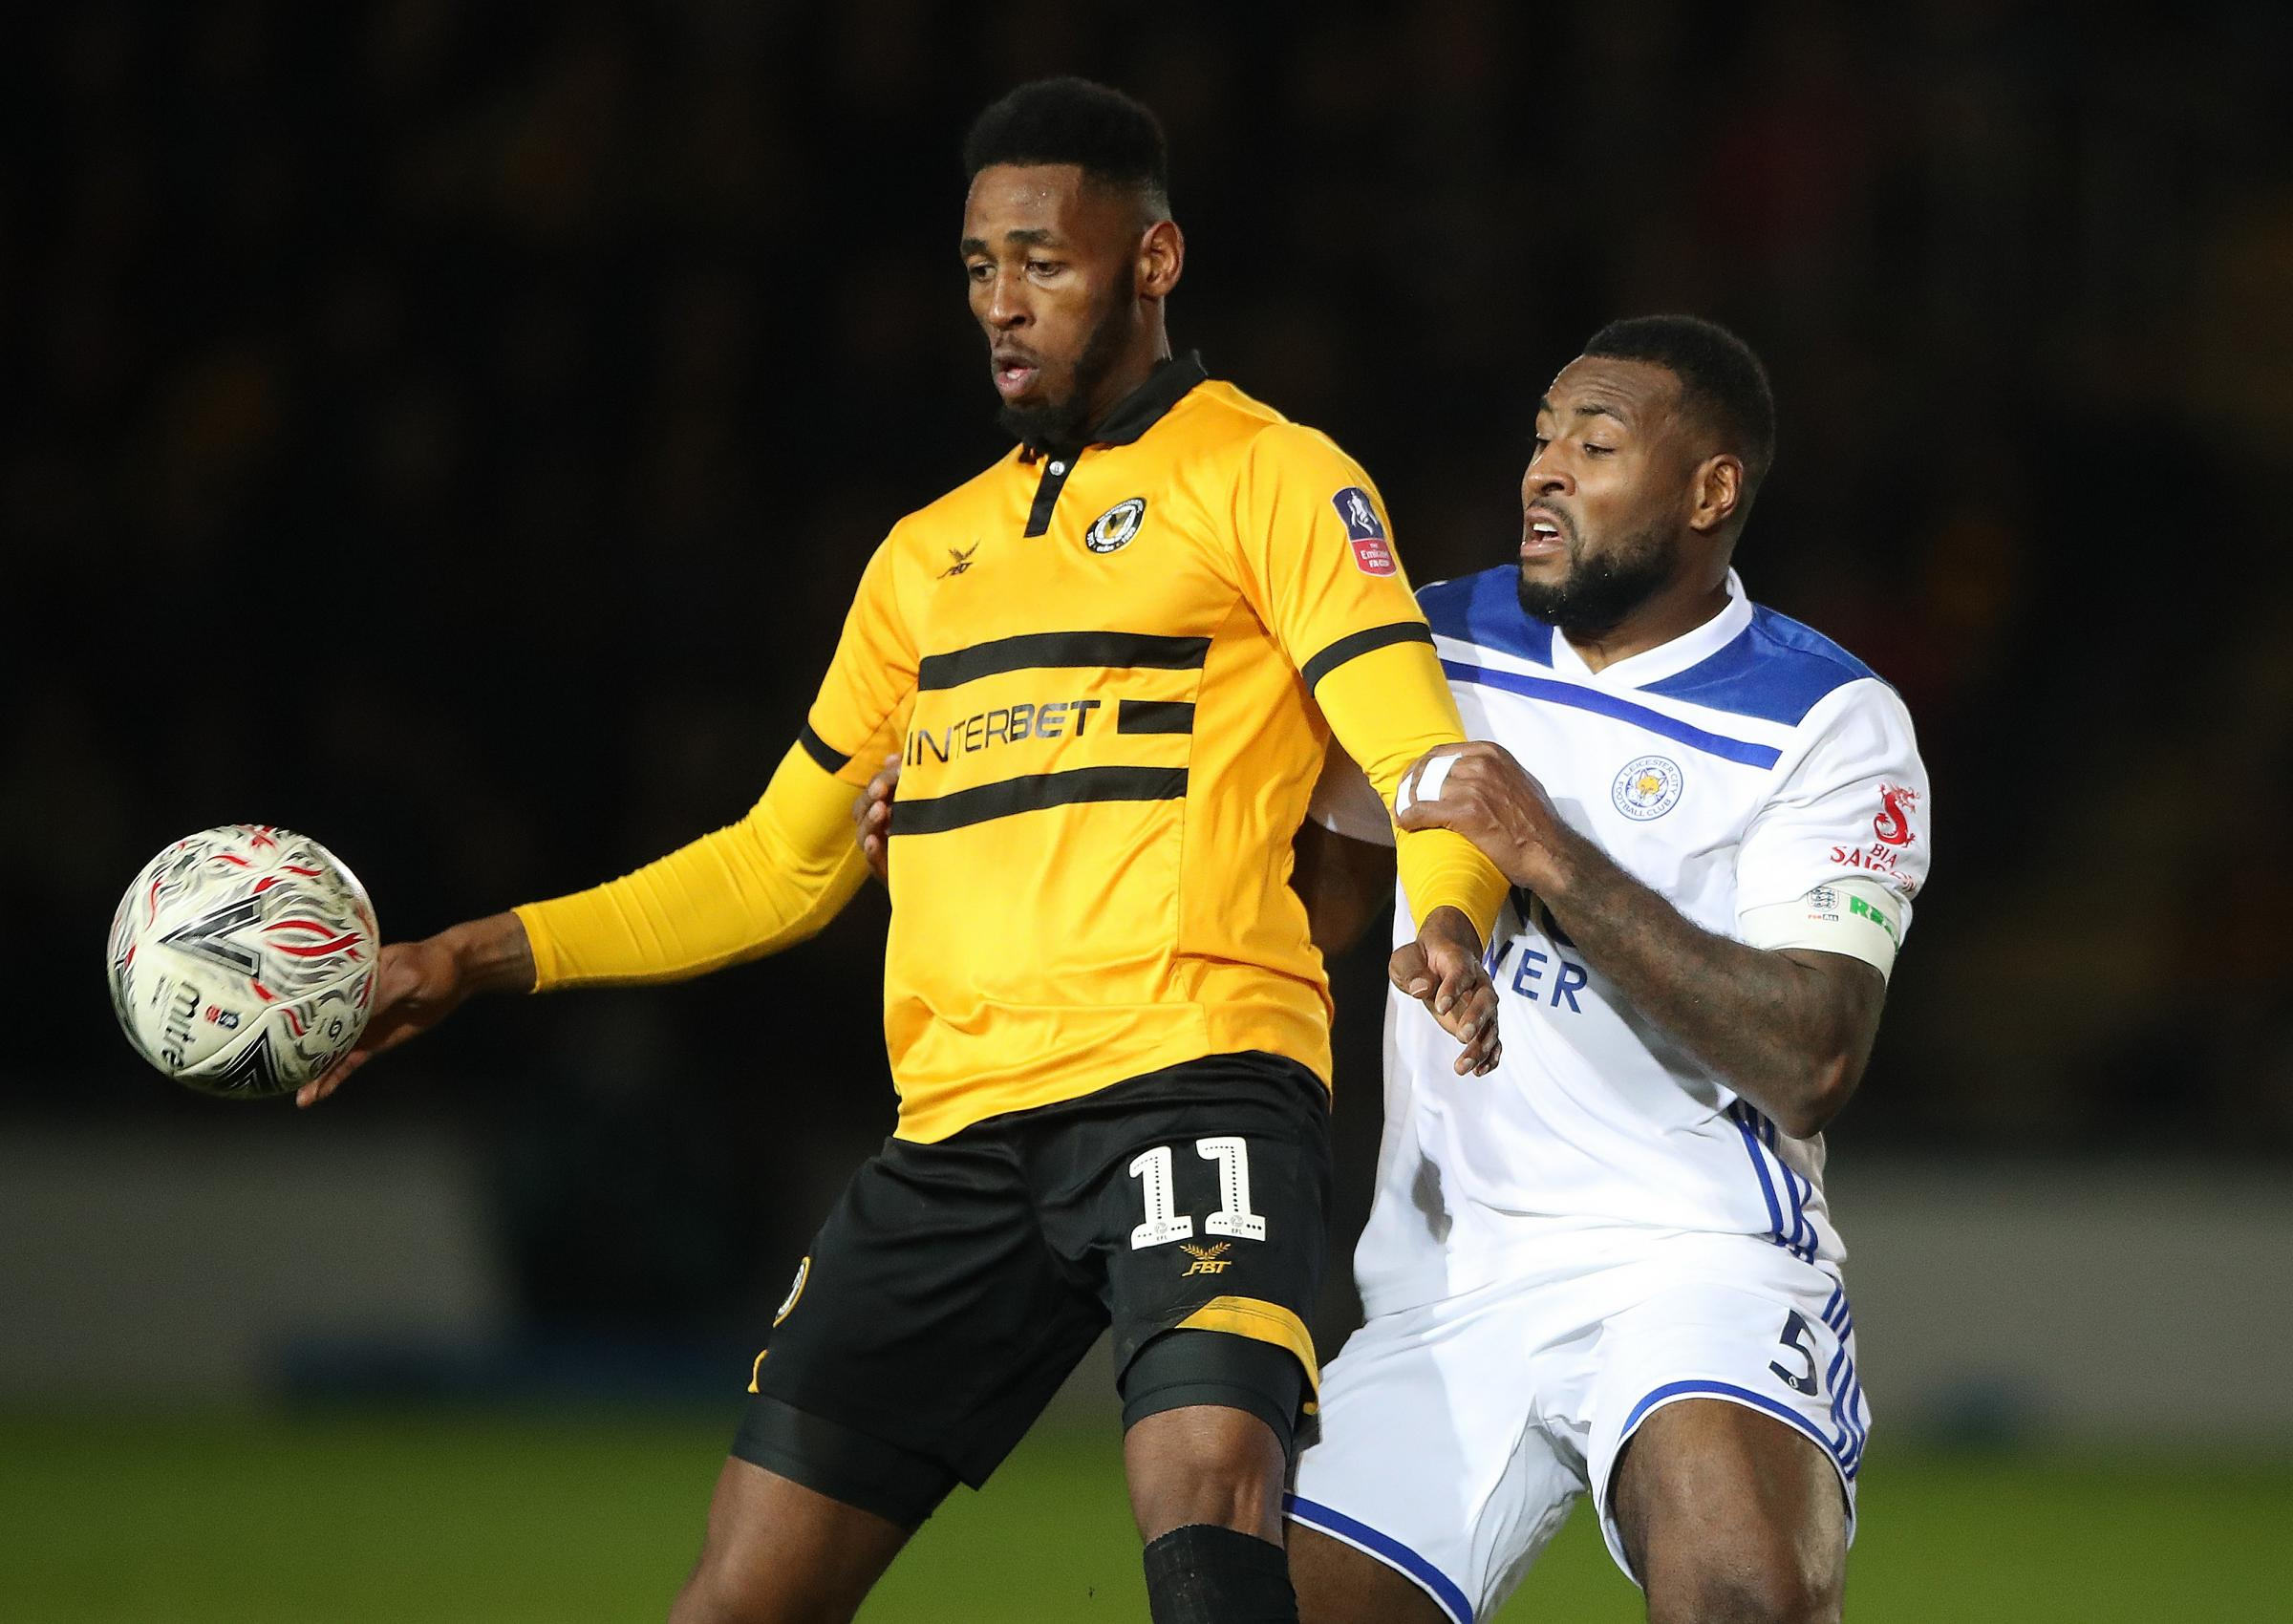 Newport County's Jamille Matt (left) and Leicester City's Wes Morgan in the previous round. Photo: PA Images.